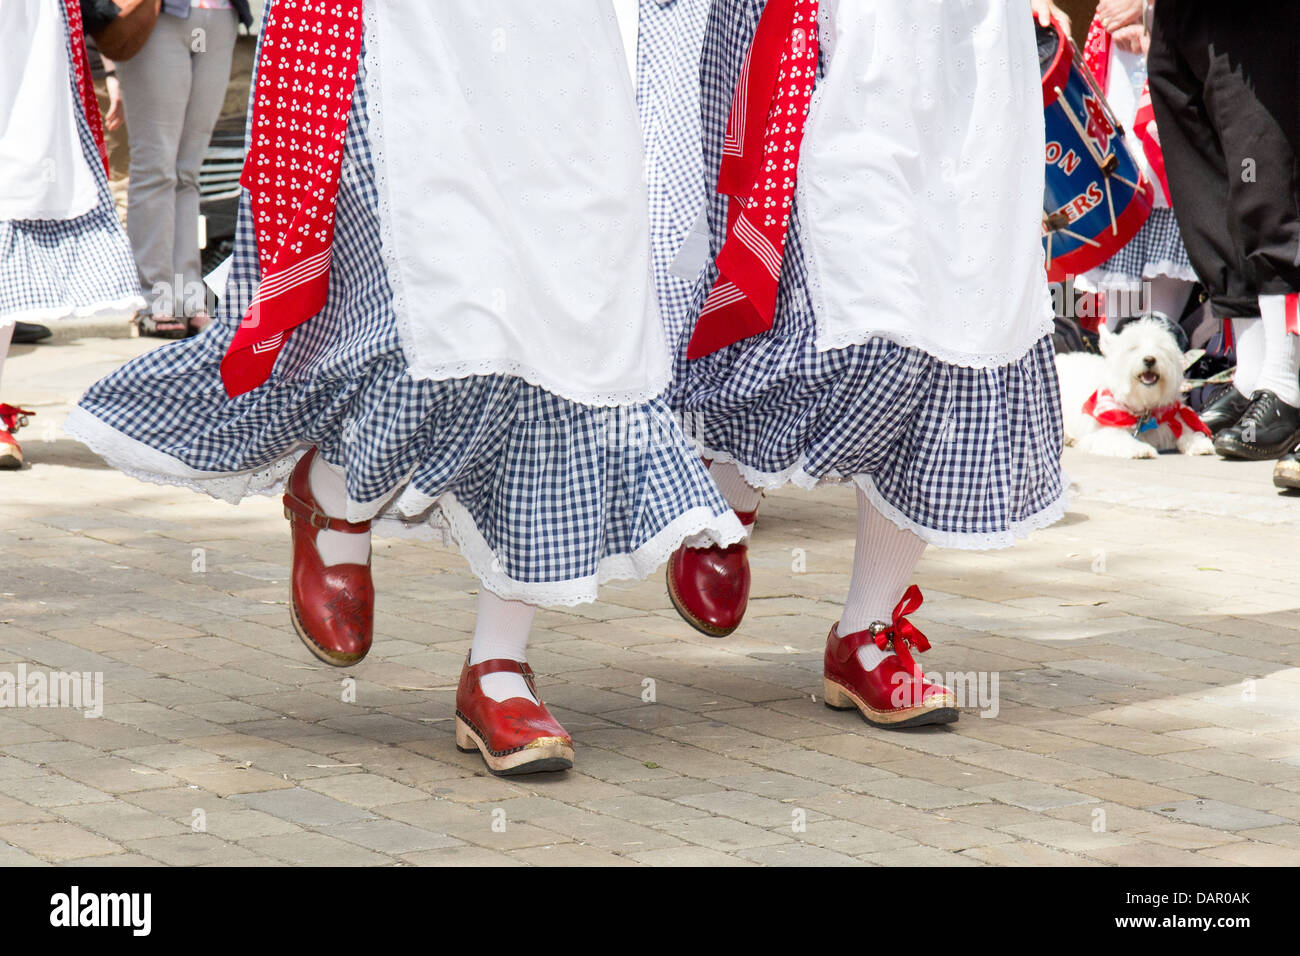 Portrait of a traditional folk dancers with red shoes at the Bakewell Day of Dance 2013, Derbyshire, England - Stock Image